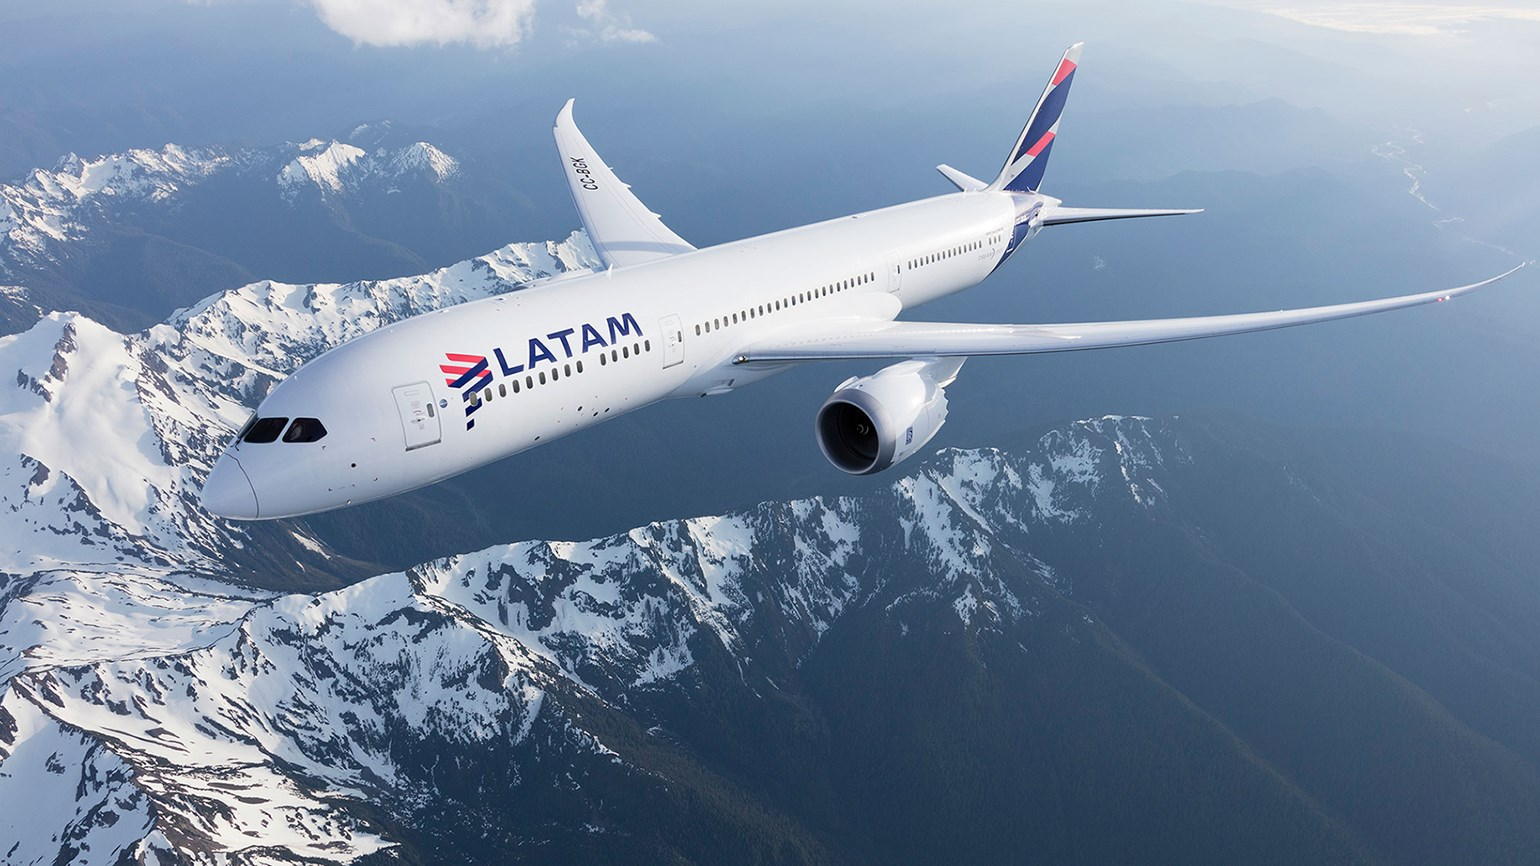 Delta and Latam get Brazil's OK on joint venture